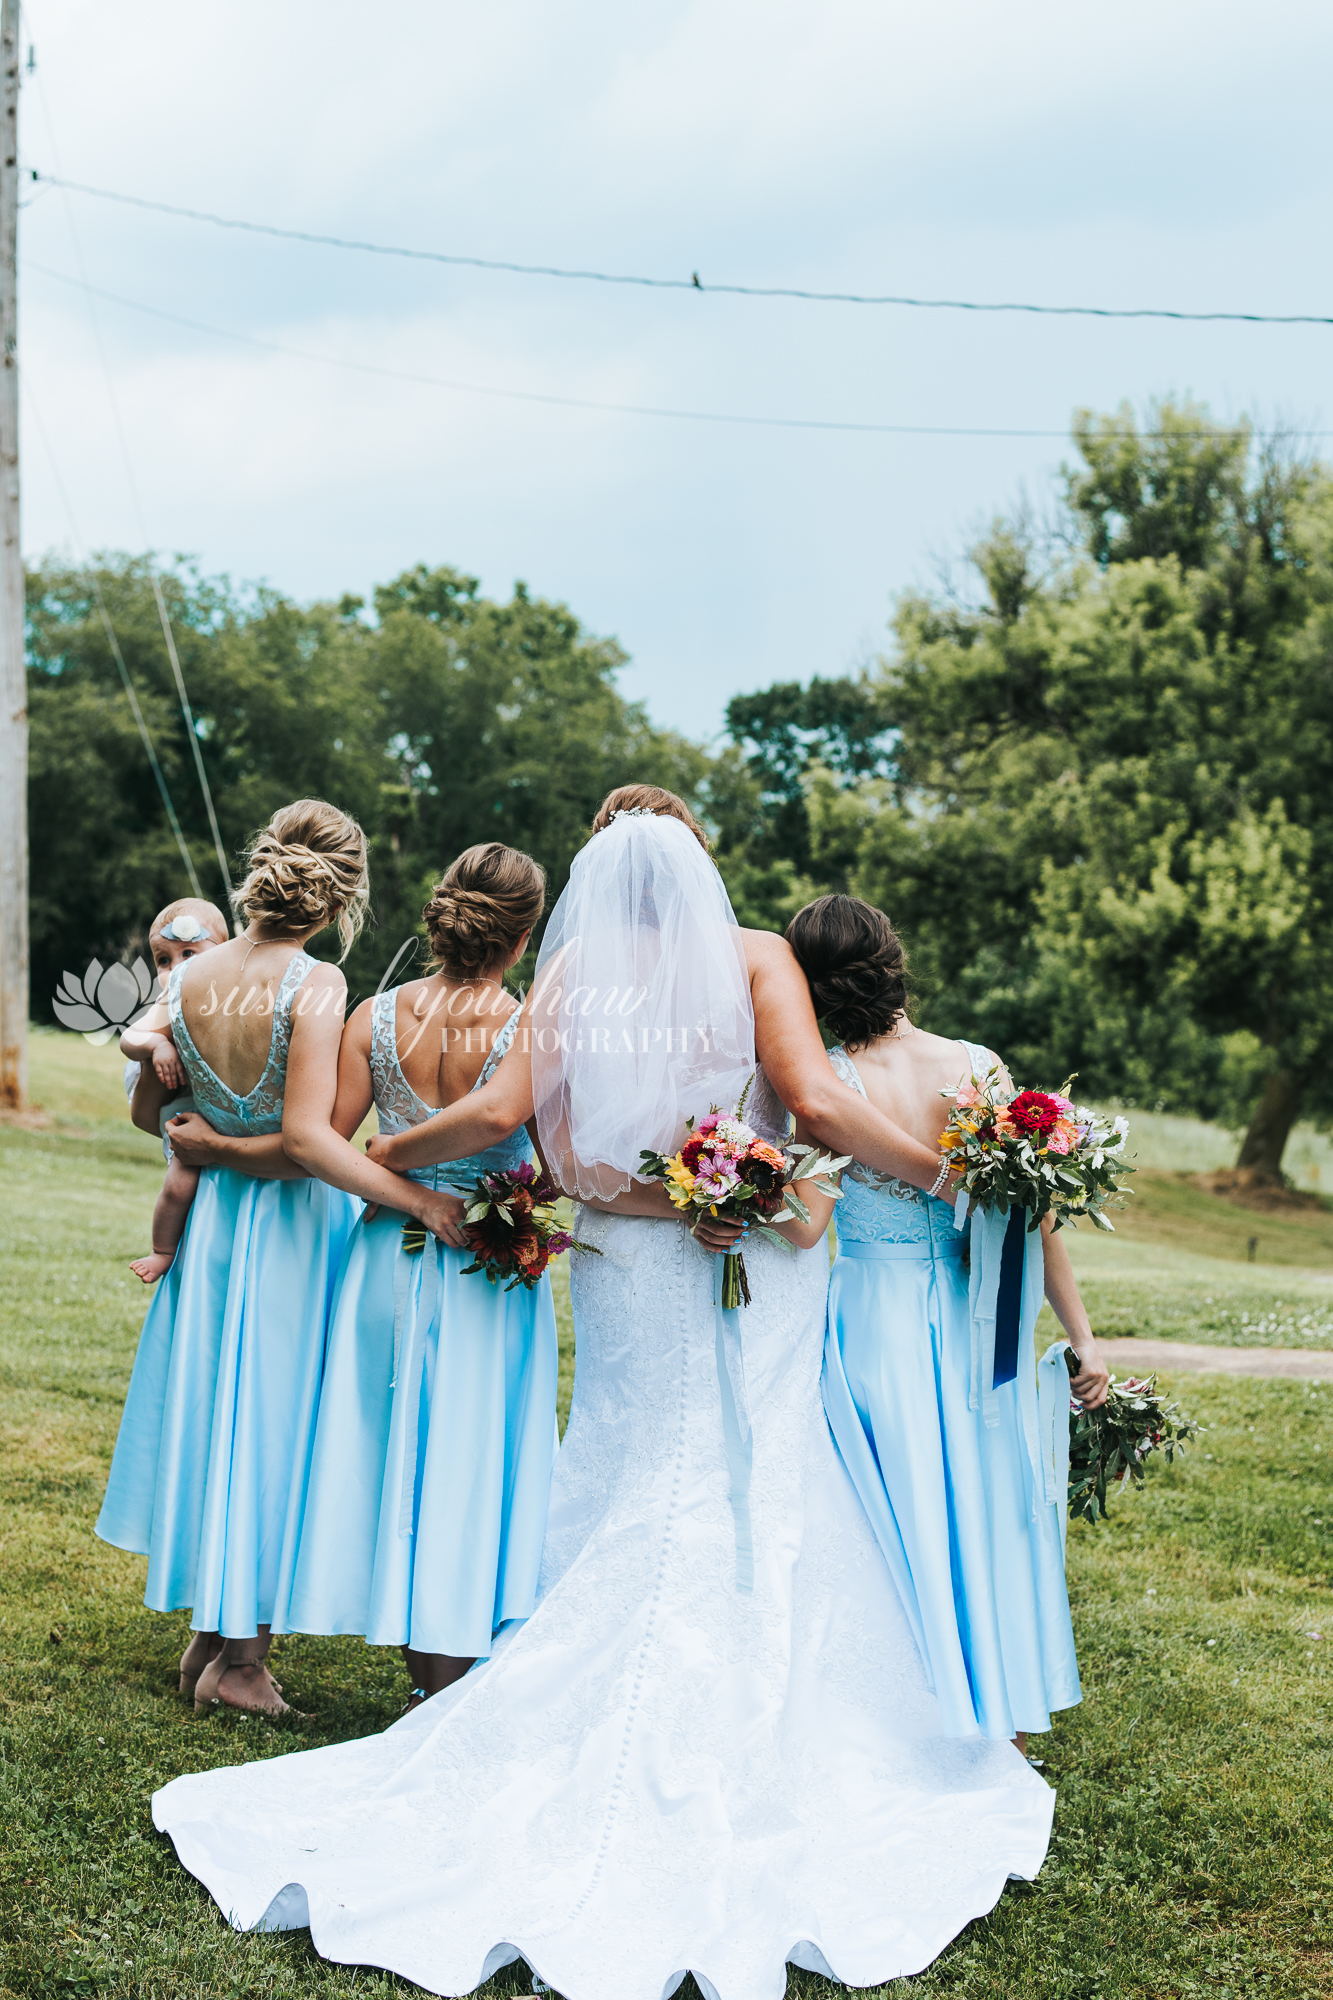 Erin and Jason Wedding Photos 07-06-2019 SLY Photography-54.jpg